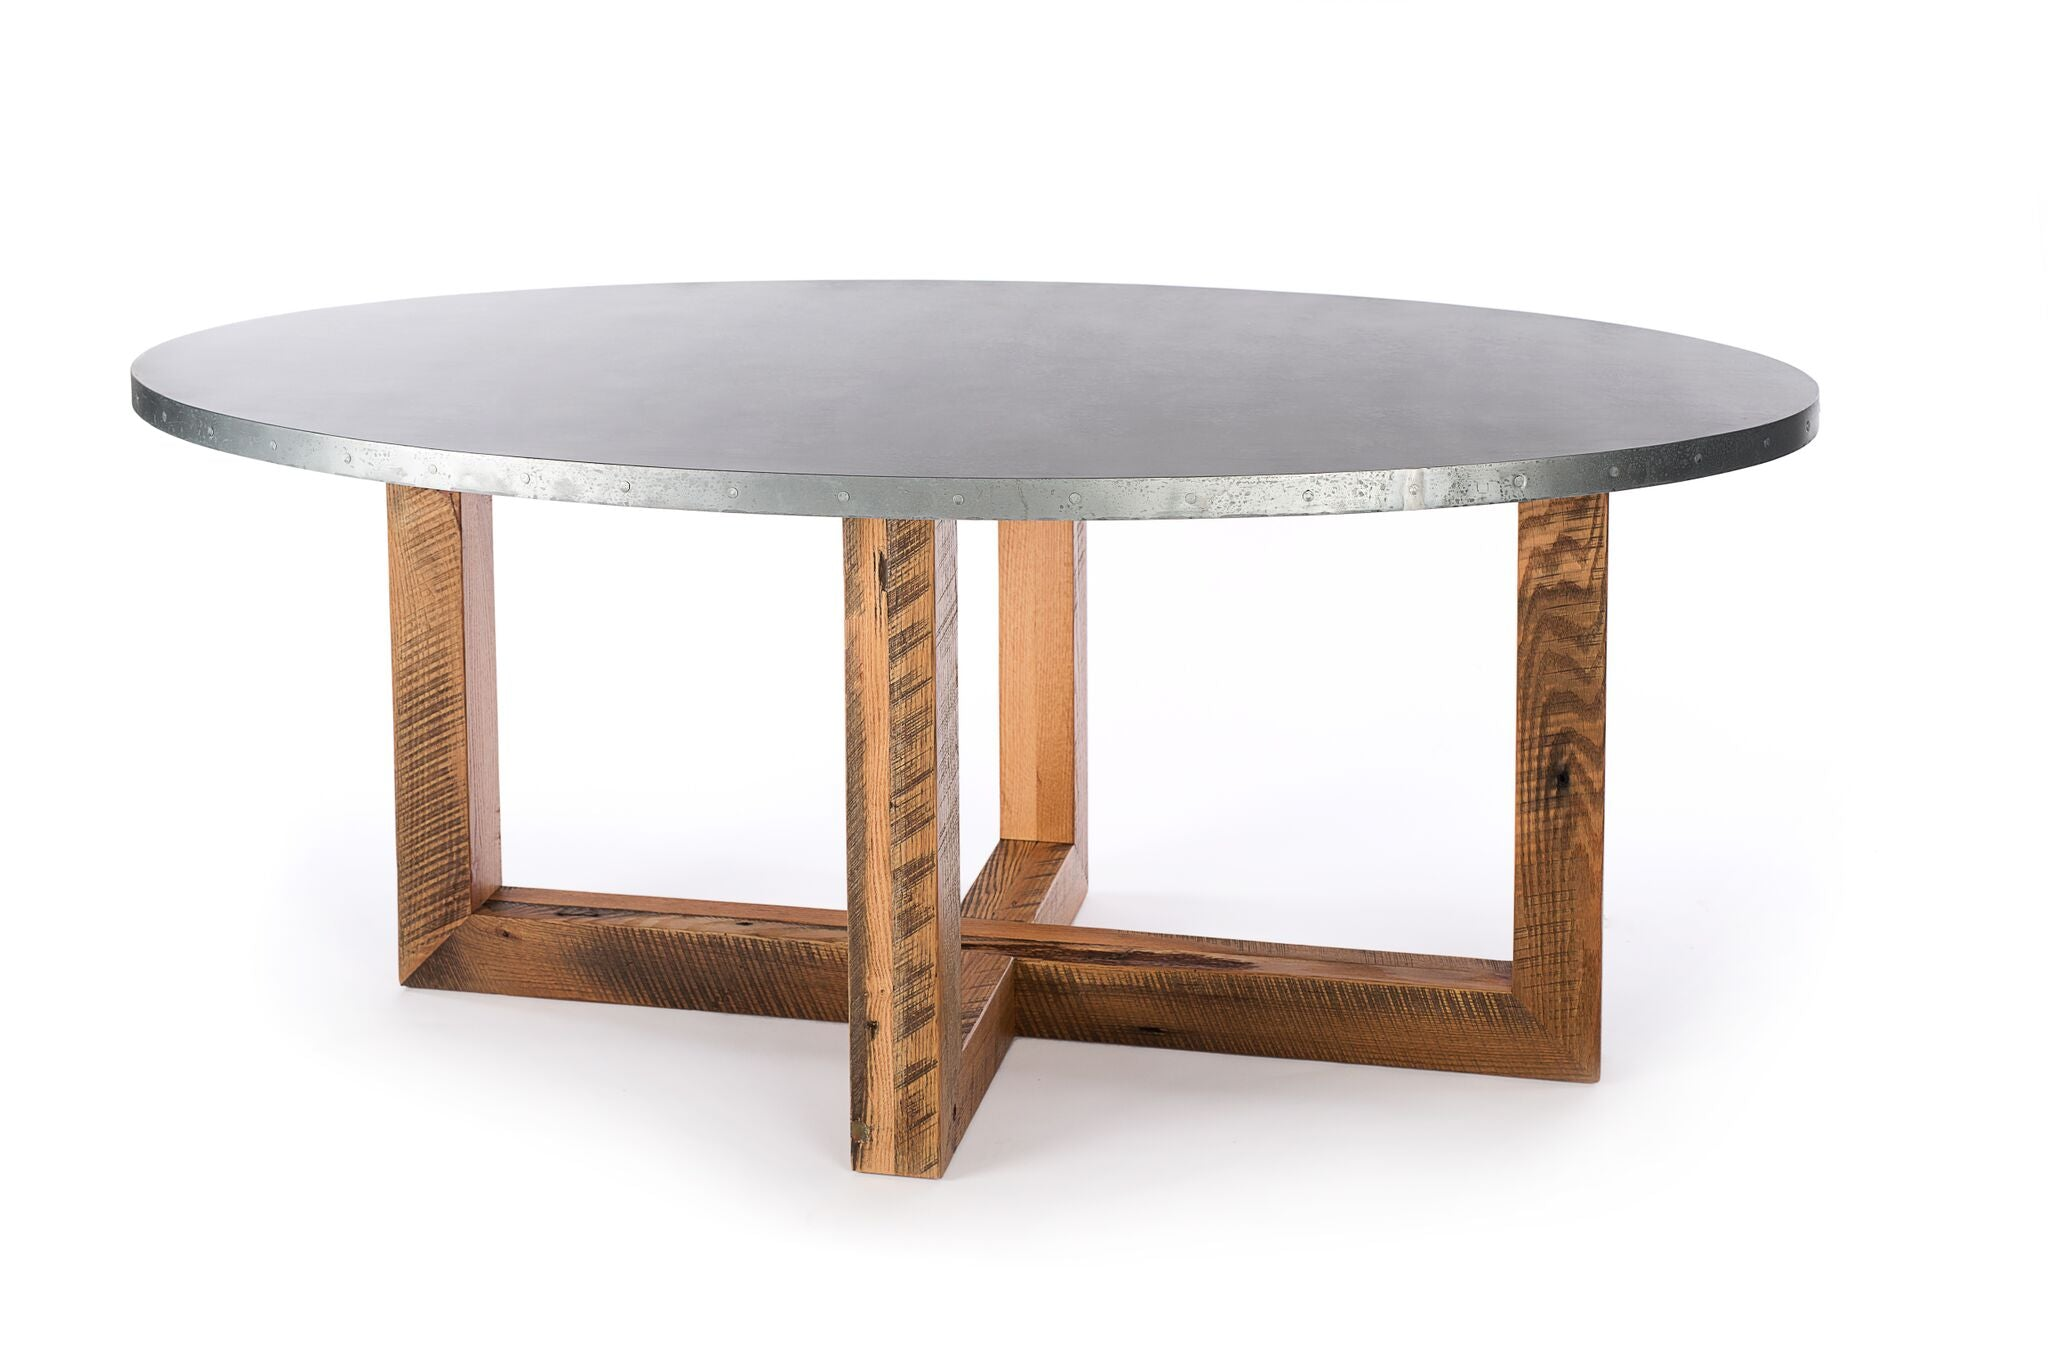 Zinc Oval Tables | Winston Table | CLASSIC | Natural Ash | CUSTOM SIZE L 60.00 W 37.00 H undefined | kingston-krafts-zinc-tables.